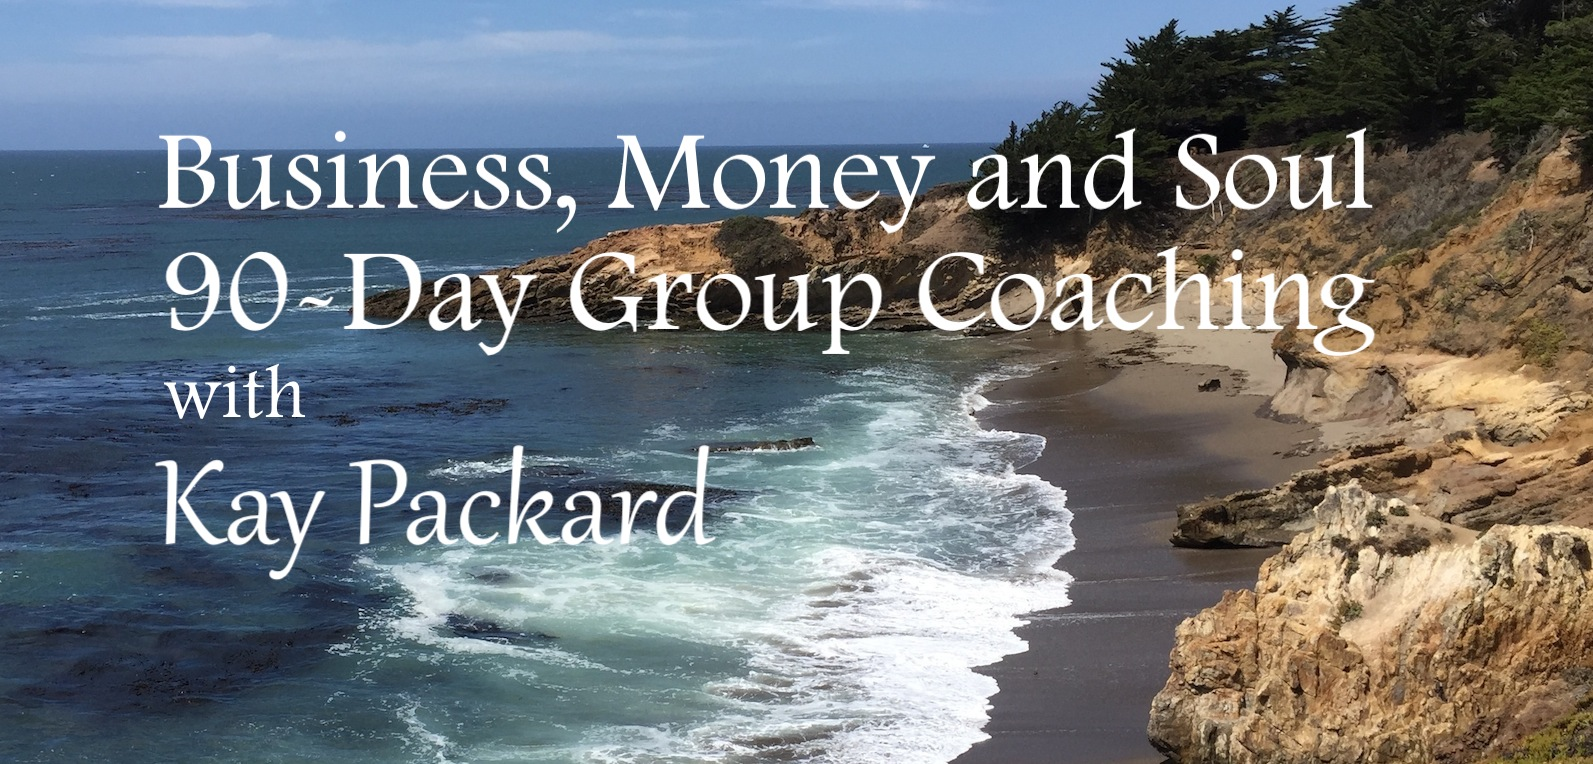 Business-Money-and-Soul-Coaching-banner